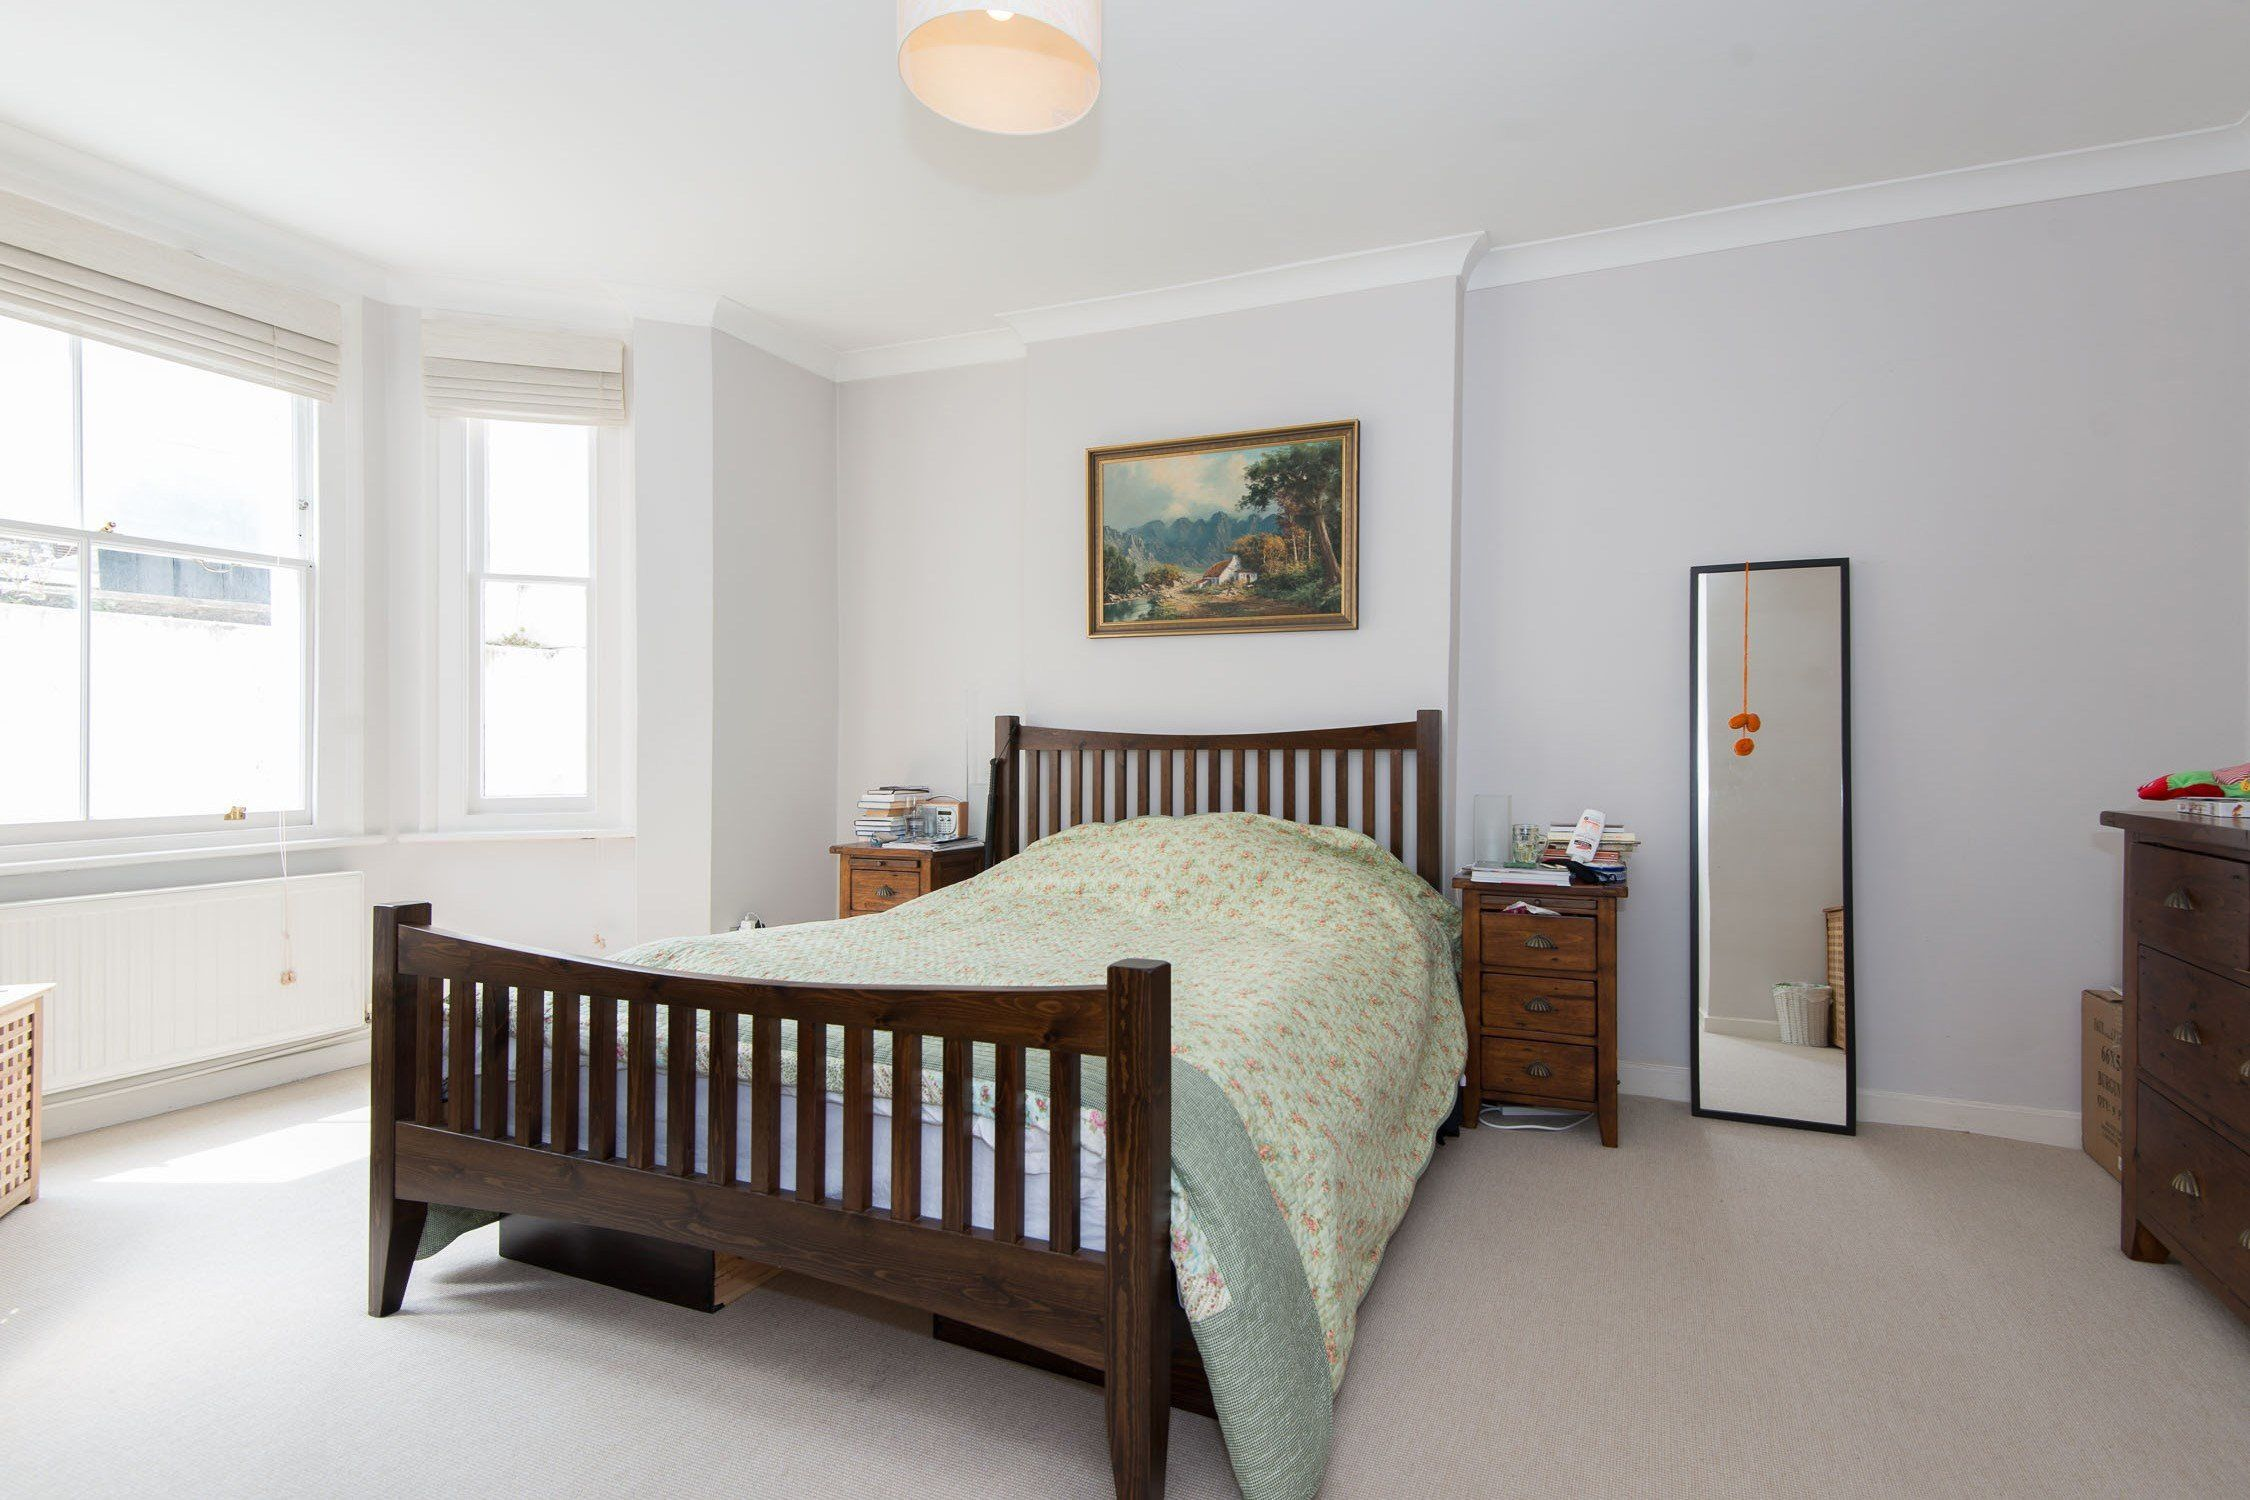 2 Bedroom Flat To Rent In Battersea Brussels Road Sw11 530pw Property Flat Rent Bedroom Rent